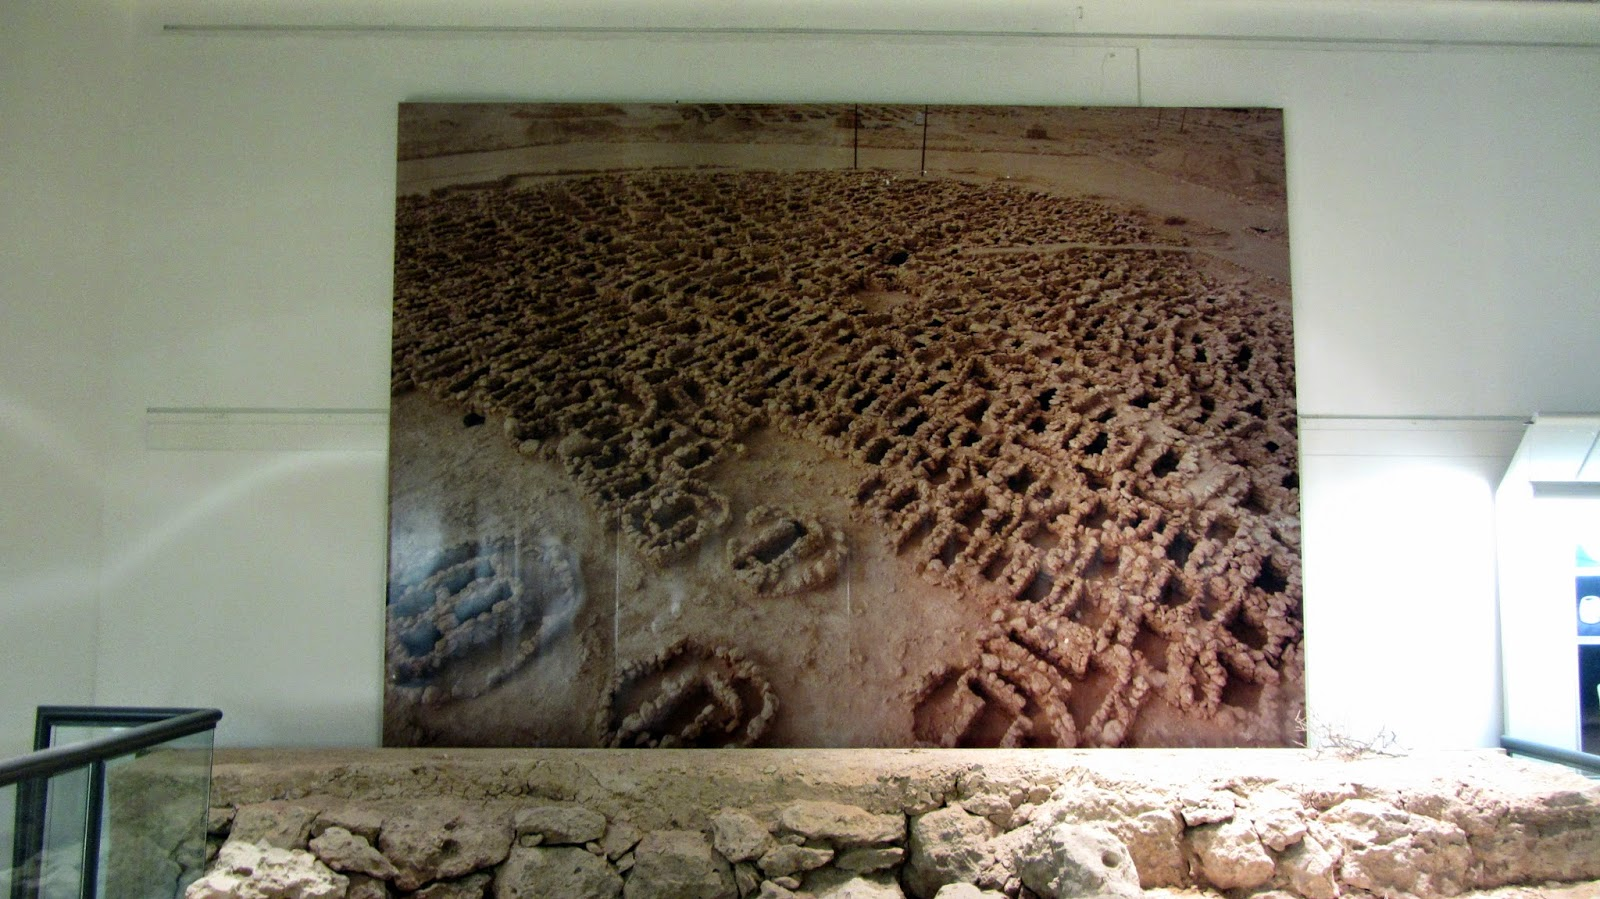 burial mounds Bahrain National Museum Pop Culture Middle East